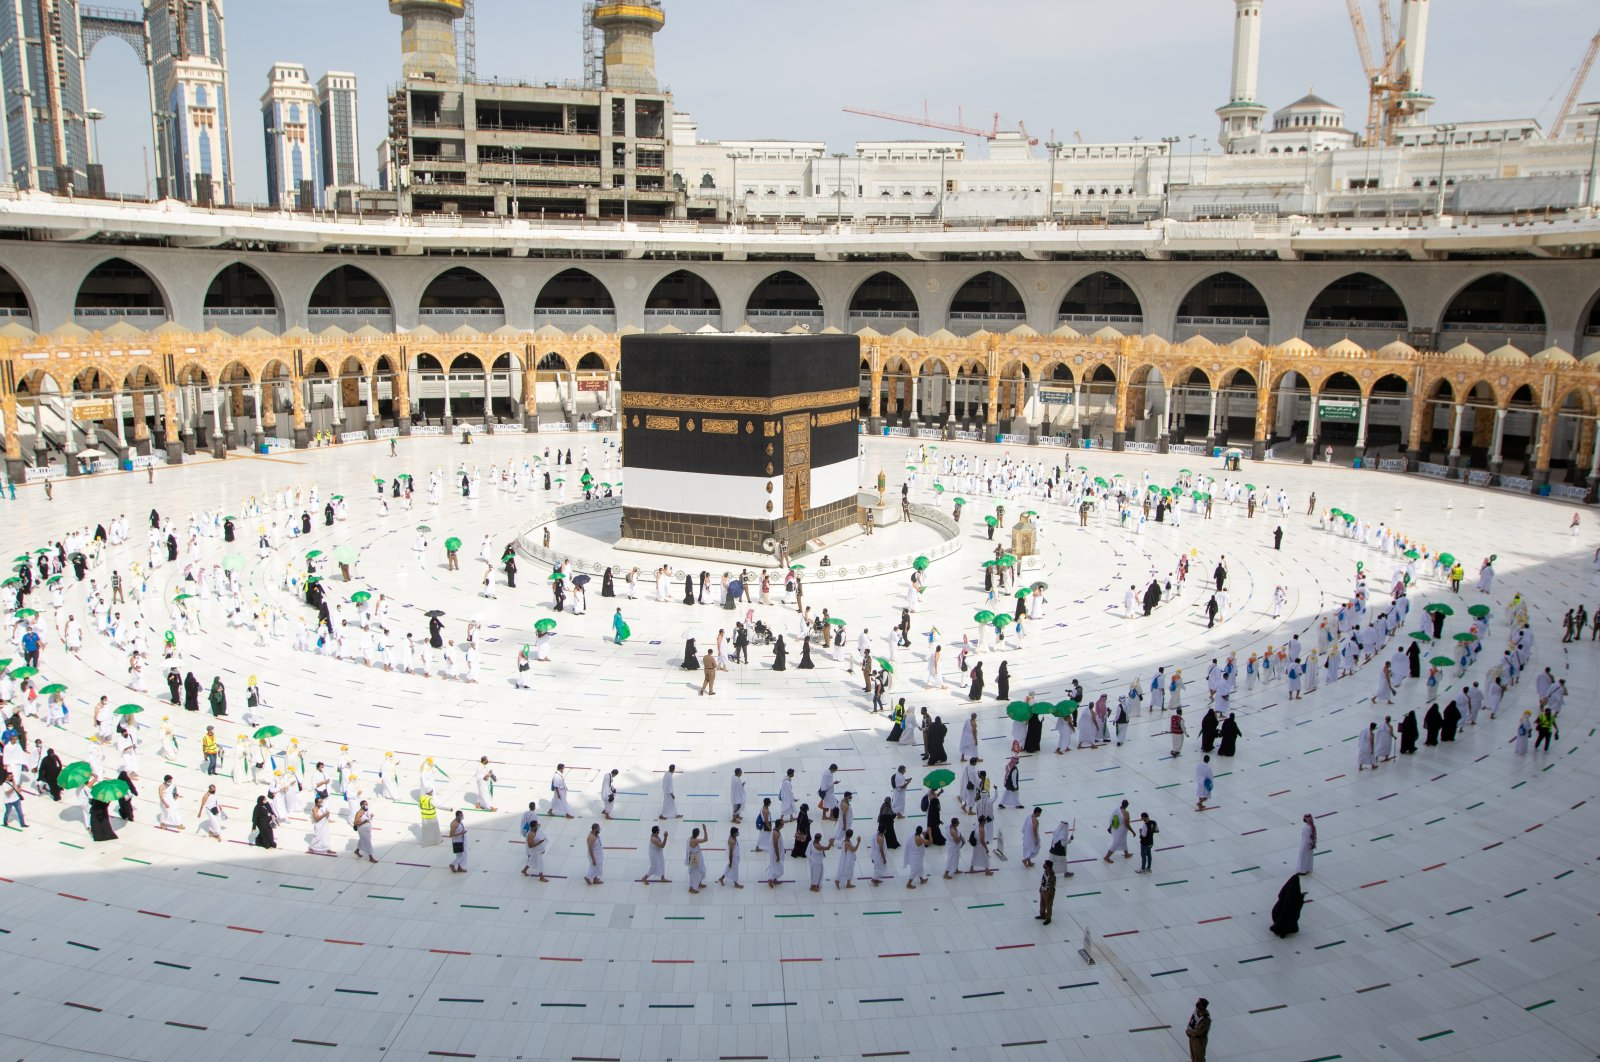 Pilgrims keeping social distance perform their umrah pilgrimage in the Grand Mosque during the annual haj pilgrimage, in the holy city of Mecca, Saudi Arabia, July 17, 2021. (Reuters Photo)